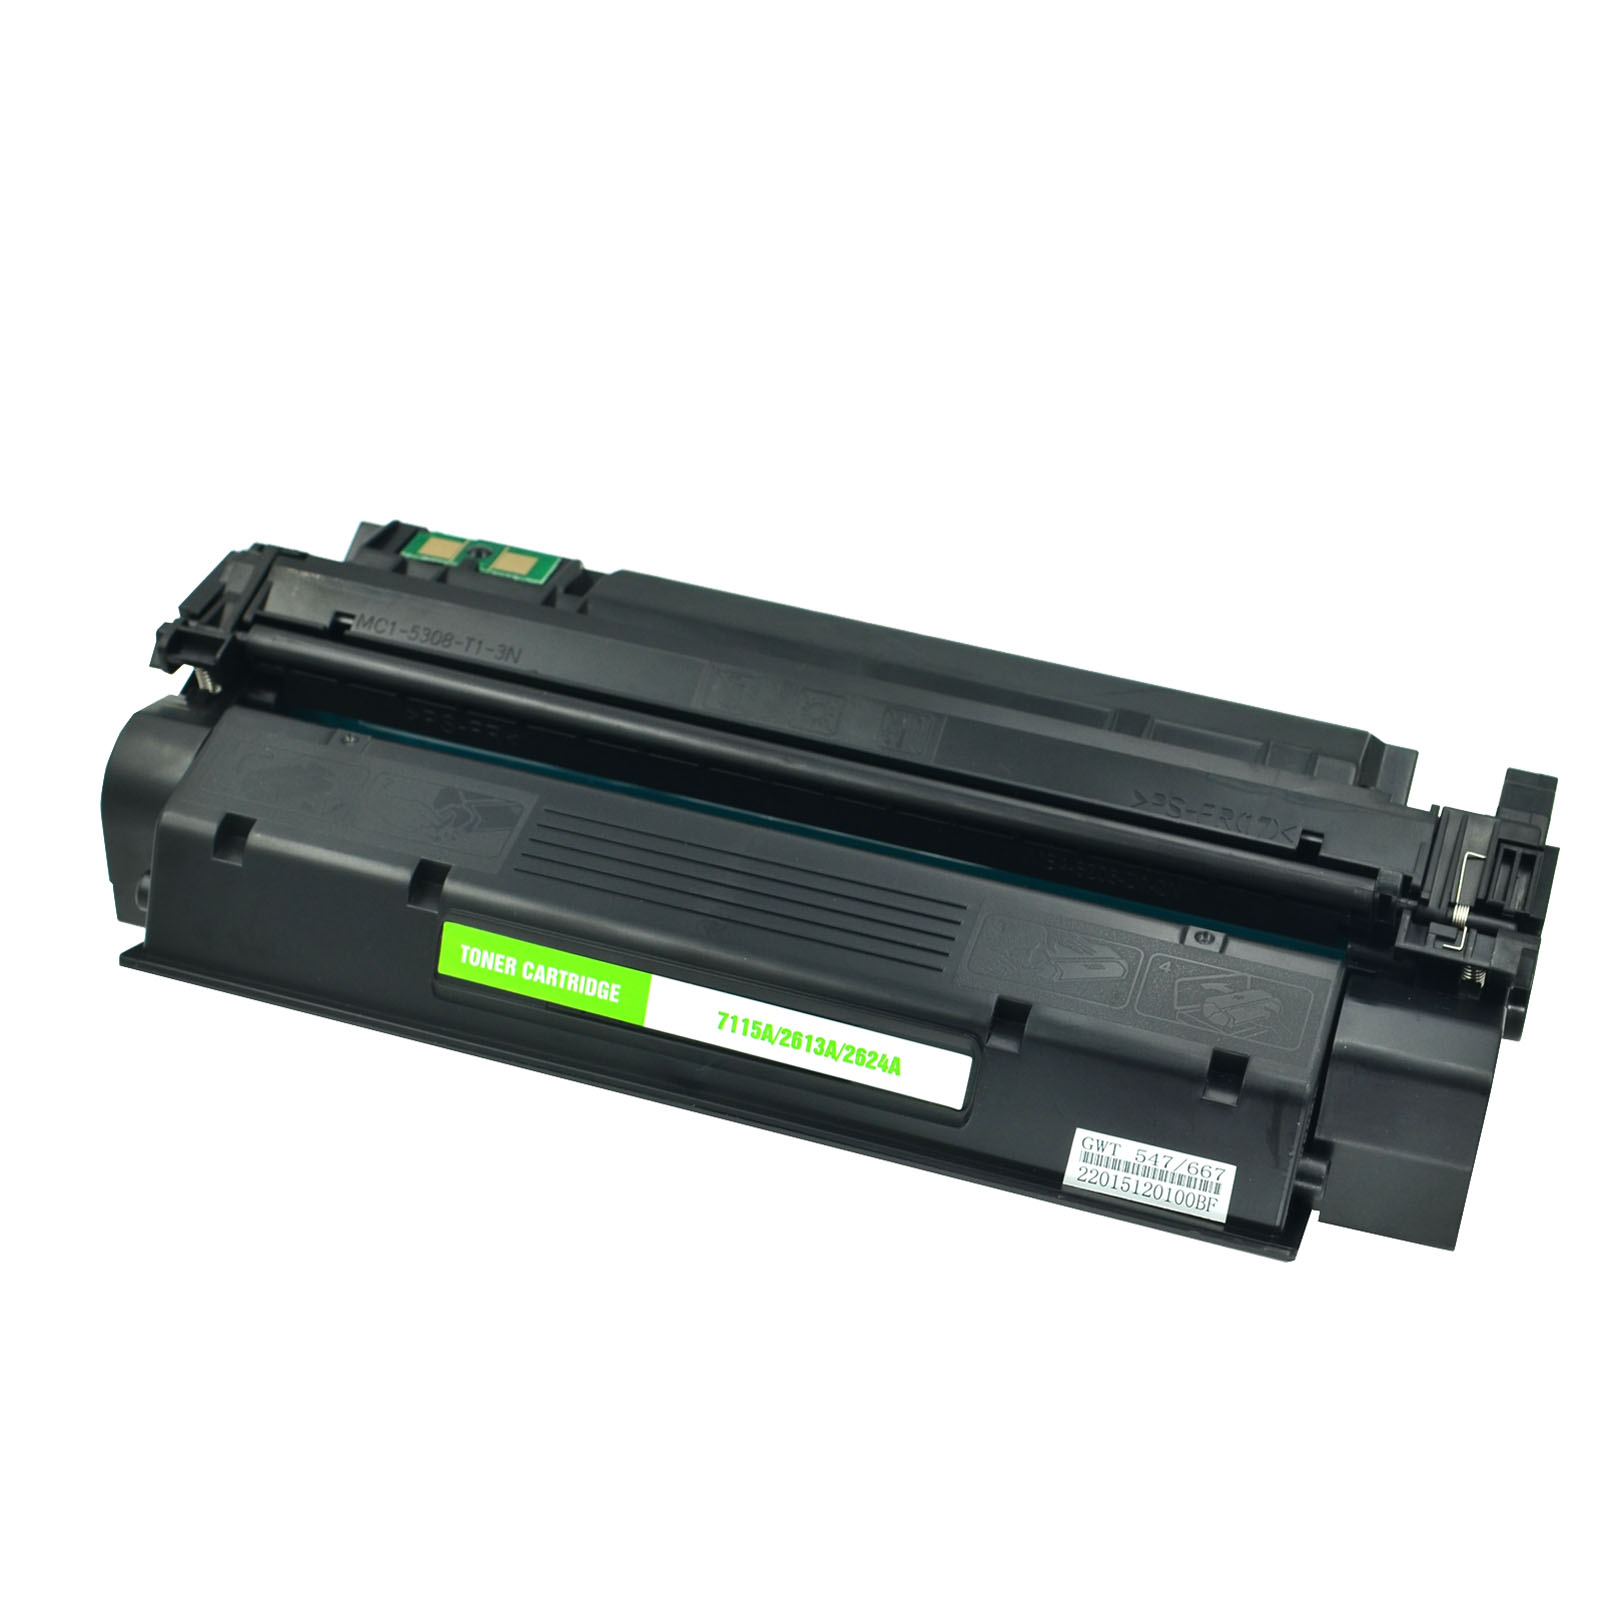 LaserJet 1200 1200n 12 5PK Compatible C7115X HY Black Toner Cartridge for HP